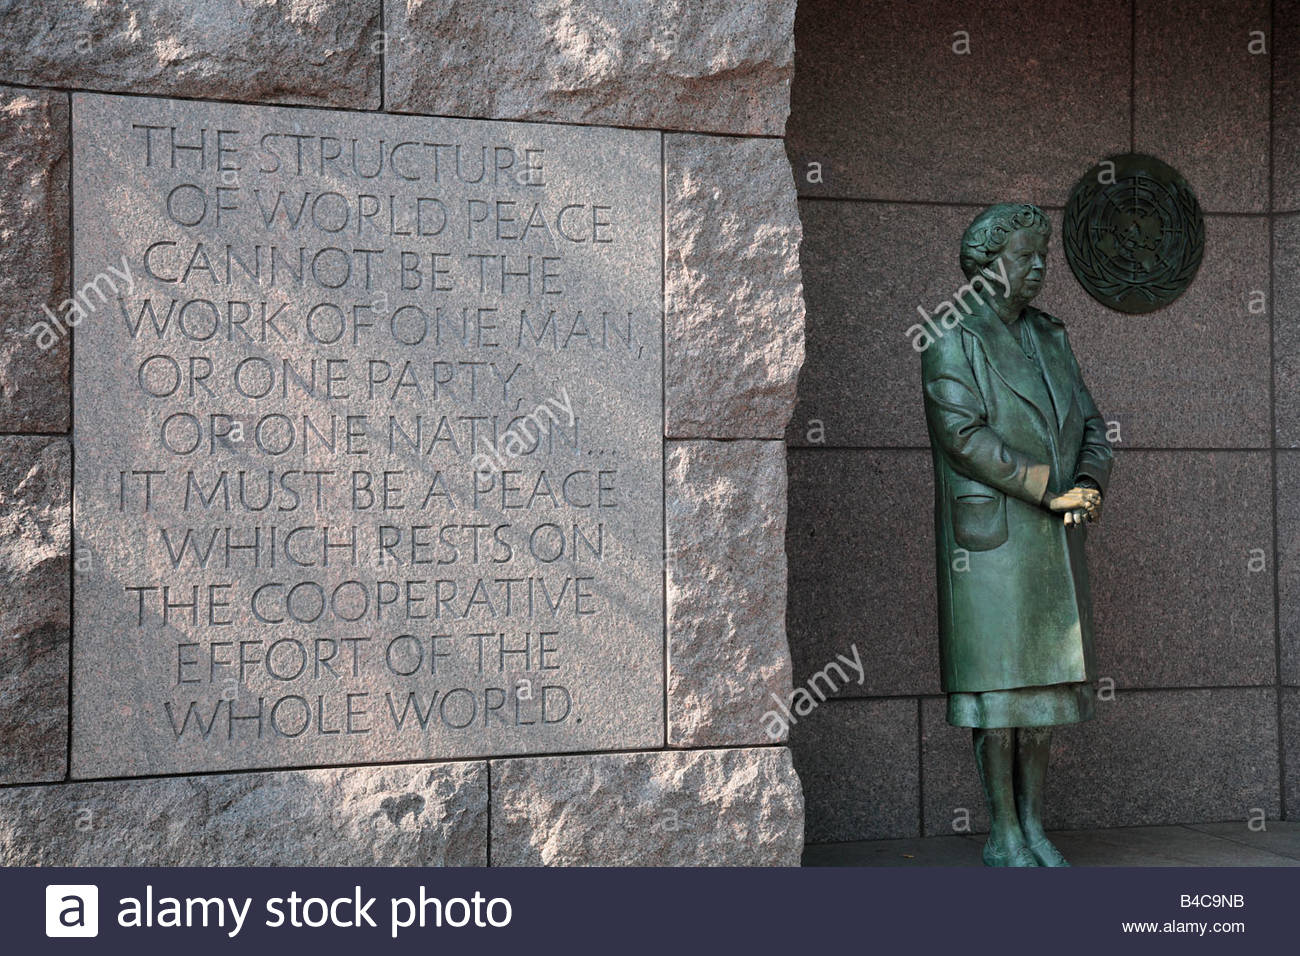 Alcove memorializing Eleanor Roosevelt, at the FDR Memorial in Washington, DC. - Stock Image